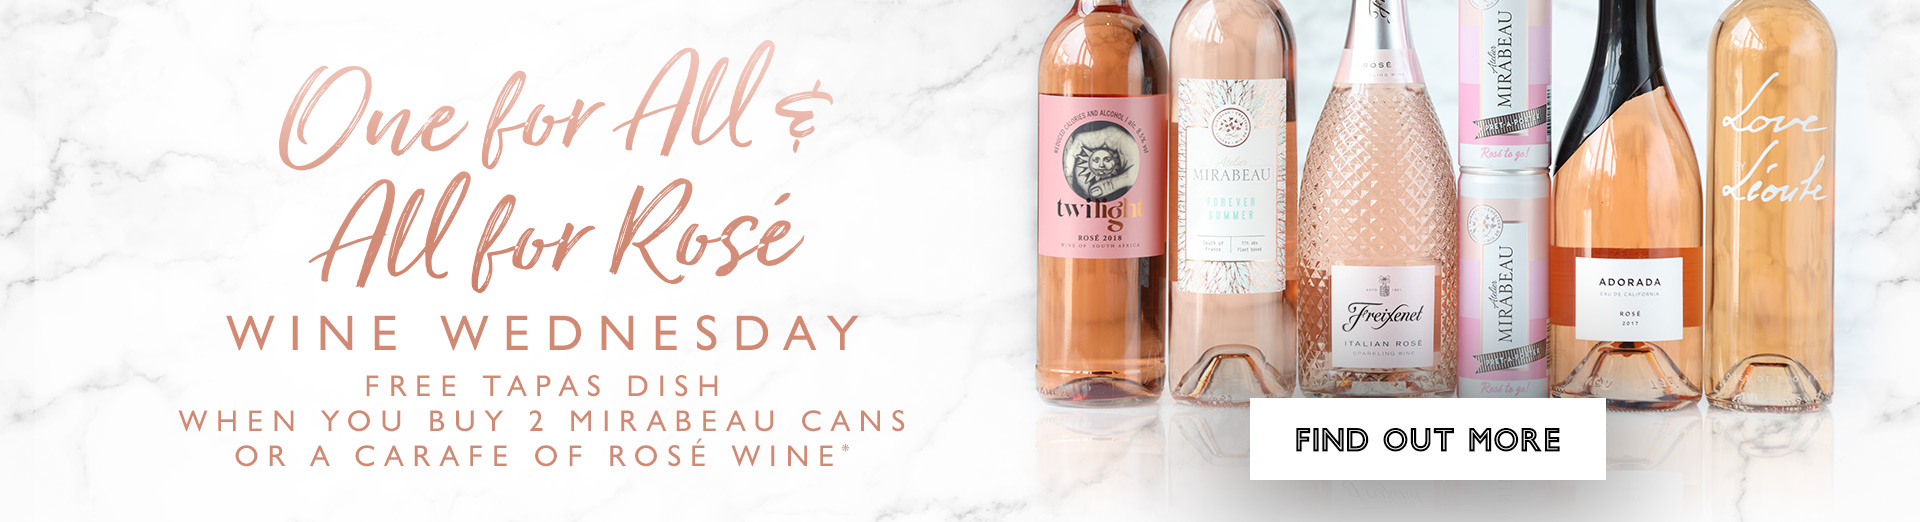 Wine Wednesdays at All Bar One Appold Street